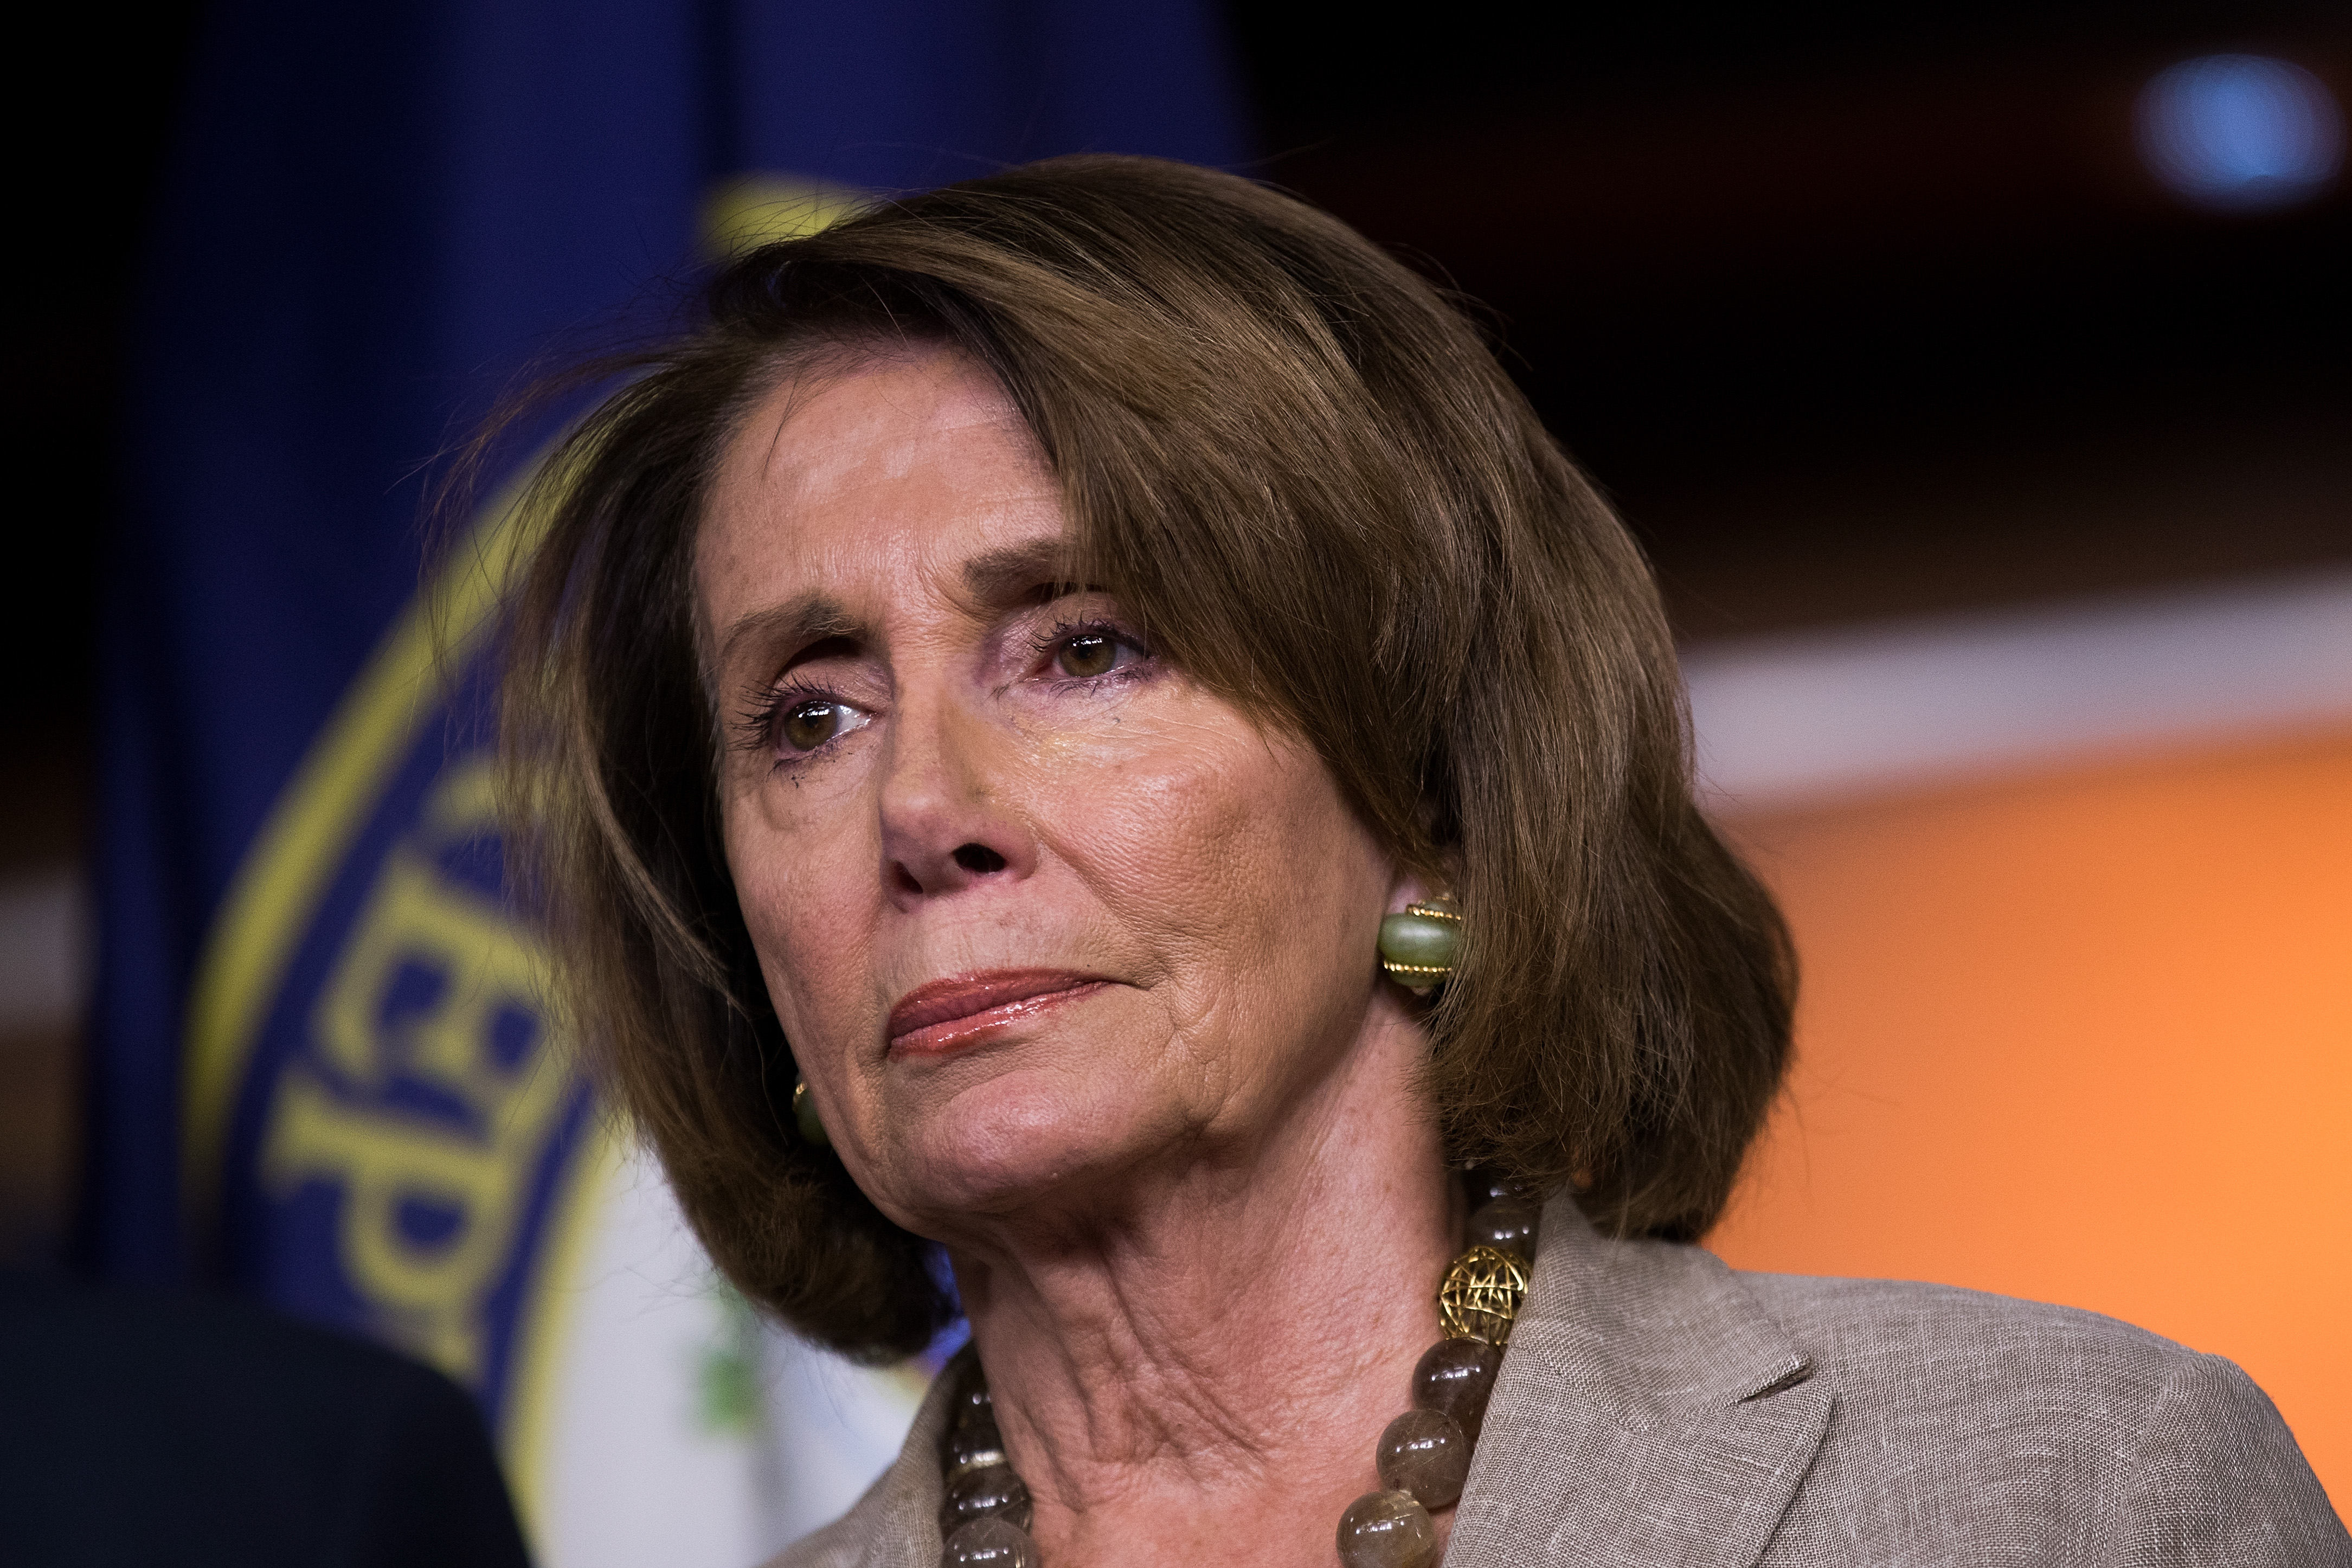 House Minority Leader Nancy Pelosi (D-CA) on Capitol Hill on July 28, 2017. Pelosi condemned the Antifa extremist group in a statement on Aug. 29. (Drew Angerer/Getty Images)